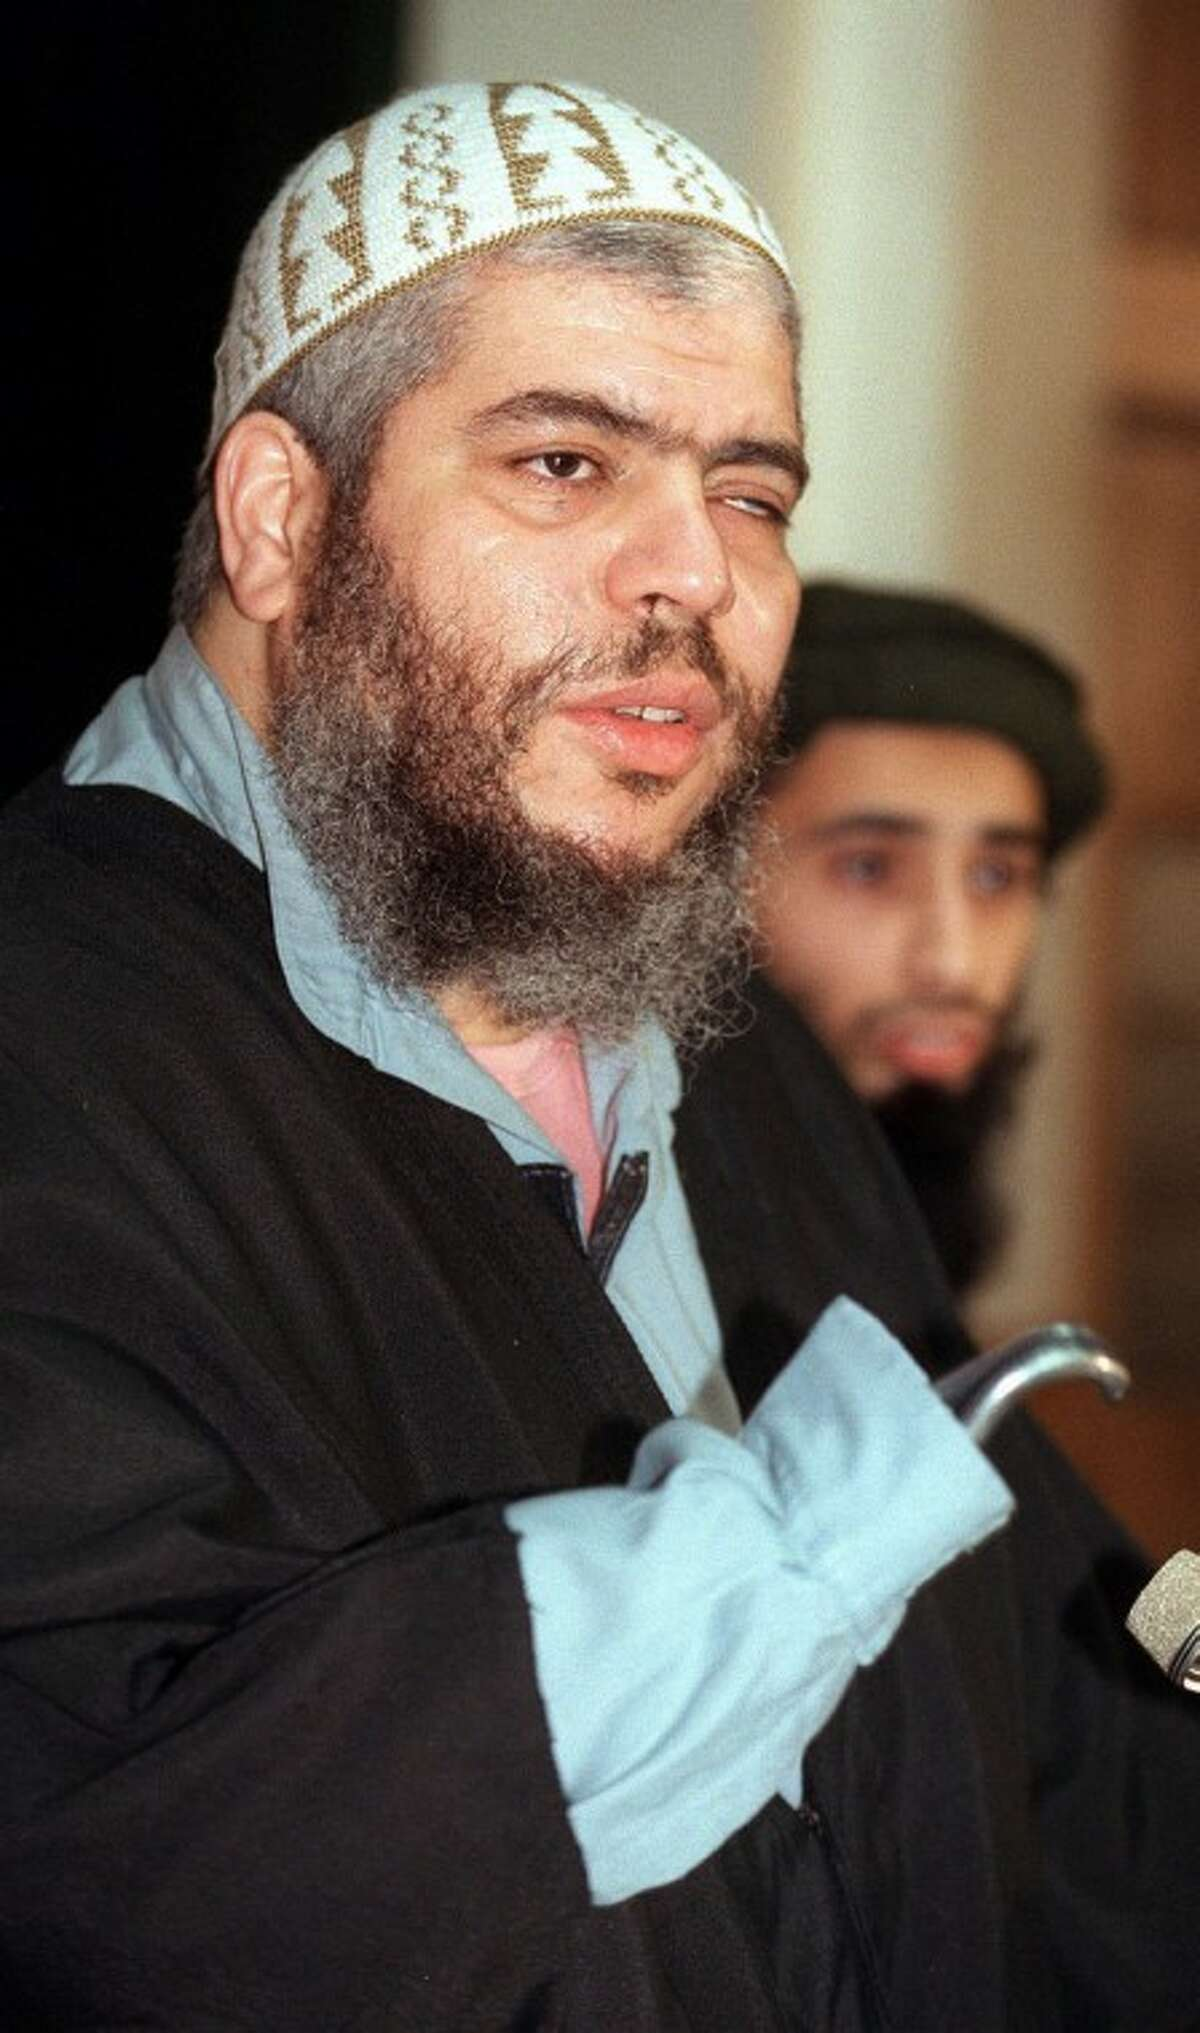 FILE - in this Jan. 20, 1999 file photo, Muslim cleric Abu Hamza al-Masri speaks at a press conference in London . A British court is expected to rule on whether extremist cleric Abu Hamza al-Masri is too ill to be extradited to the United States to face terror charges. London's High Court is set to decide Friday Oct. 5, 2012 whether al-Masri and other terror suspects can be sent to the U.S. to face charges that include helping set up a terrorist training camp in rural Oregon. (AP Photo/Alastair Grant, File)